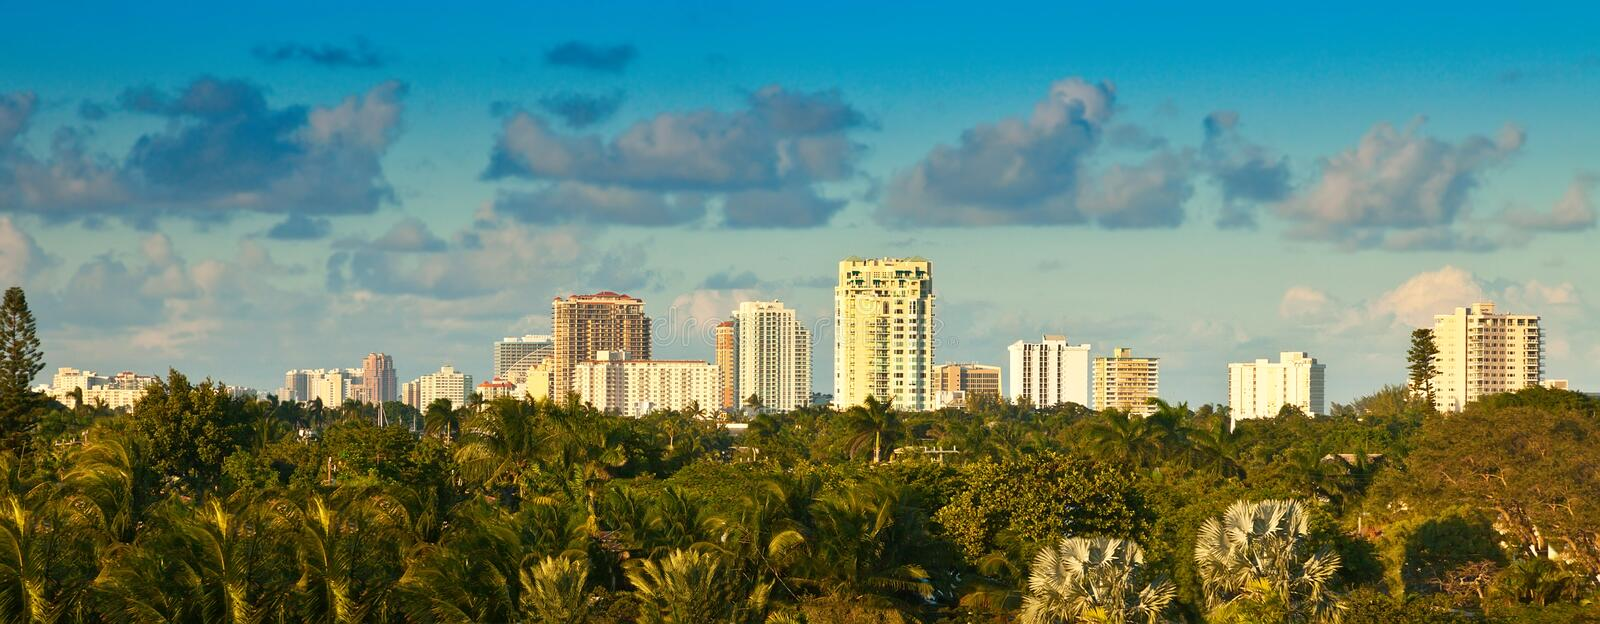 Fort Lauderdale stockbild